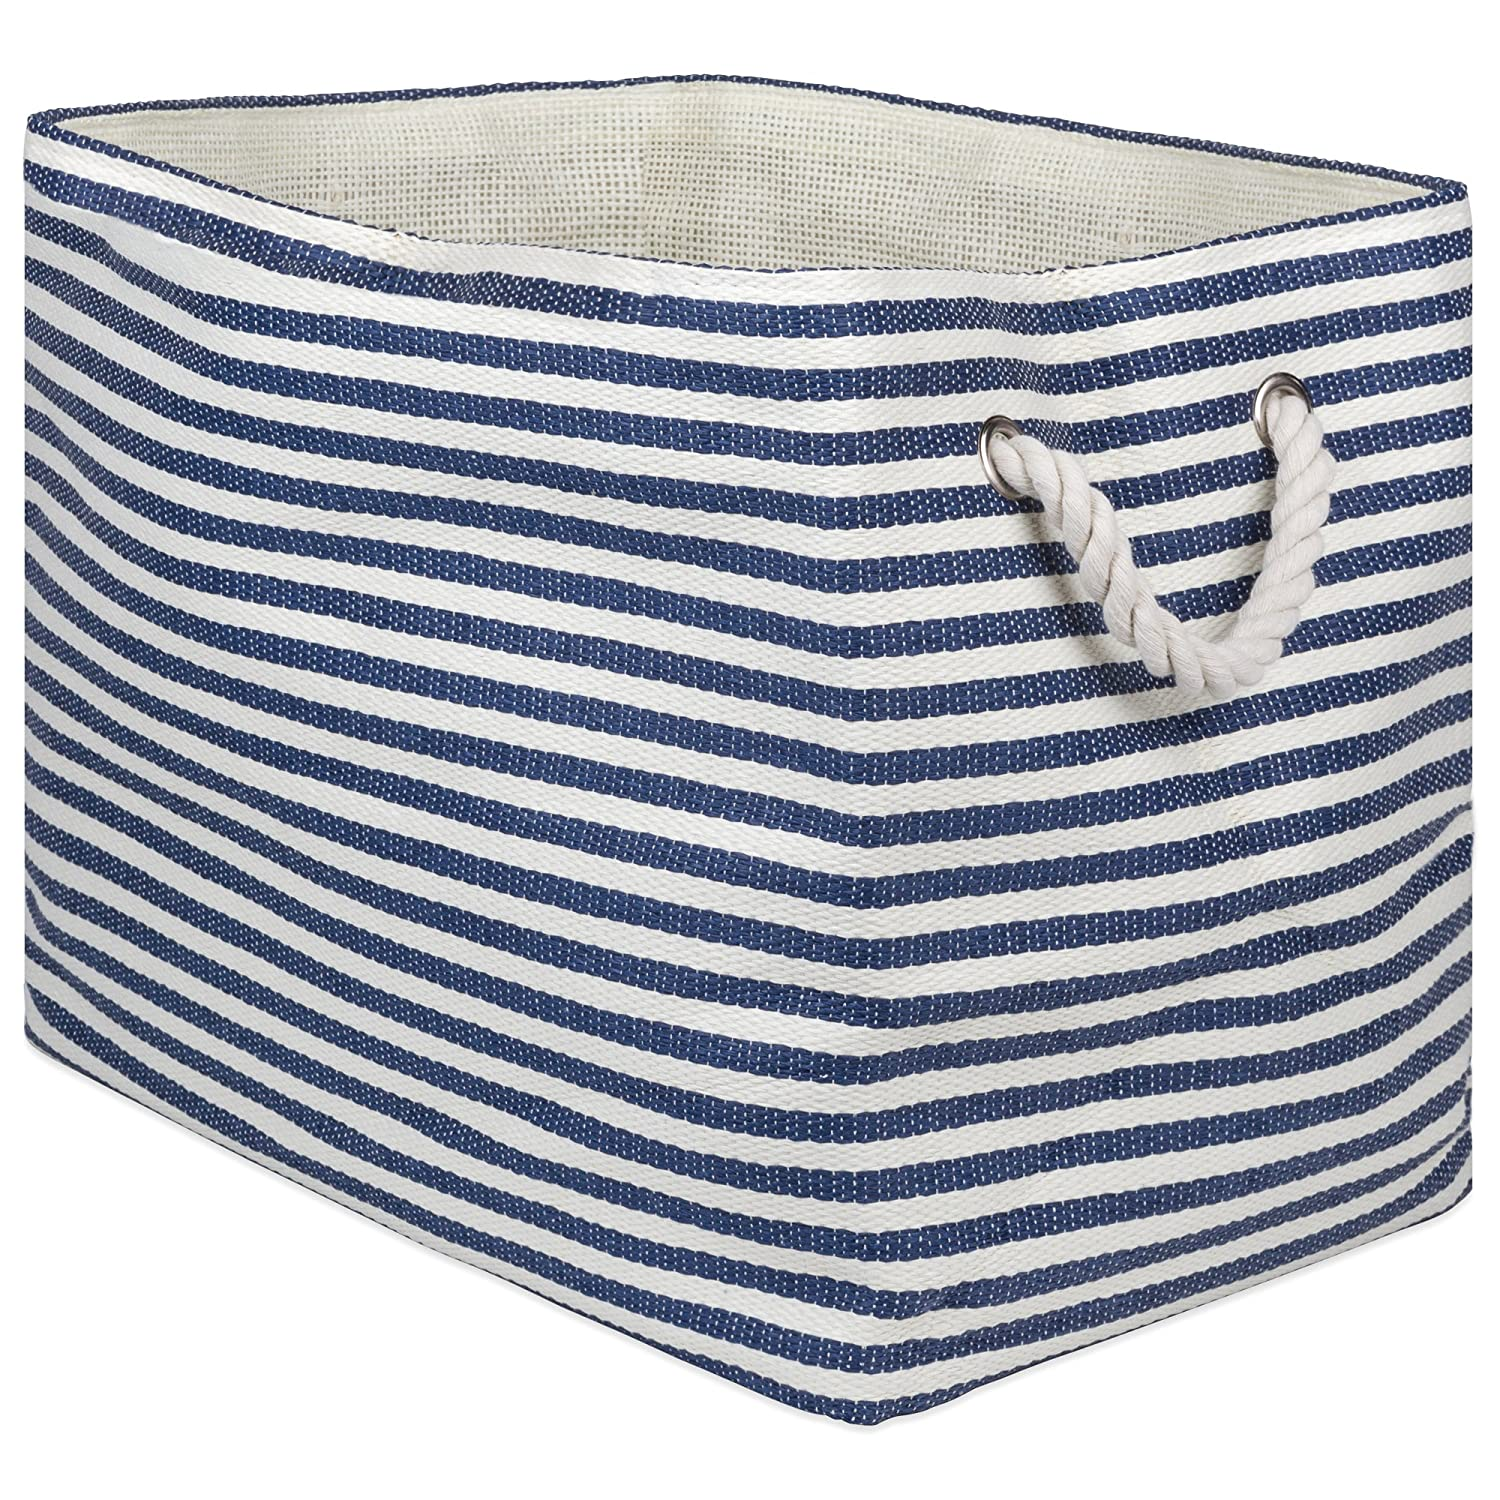 Amazoncom Dii Oversize Woven Paper Storage Basket Or Bin, Collapsible